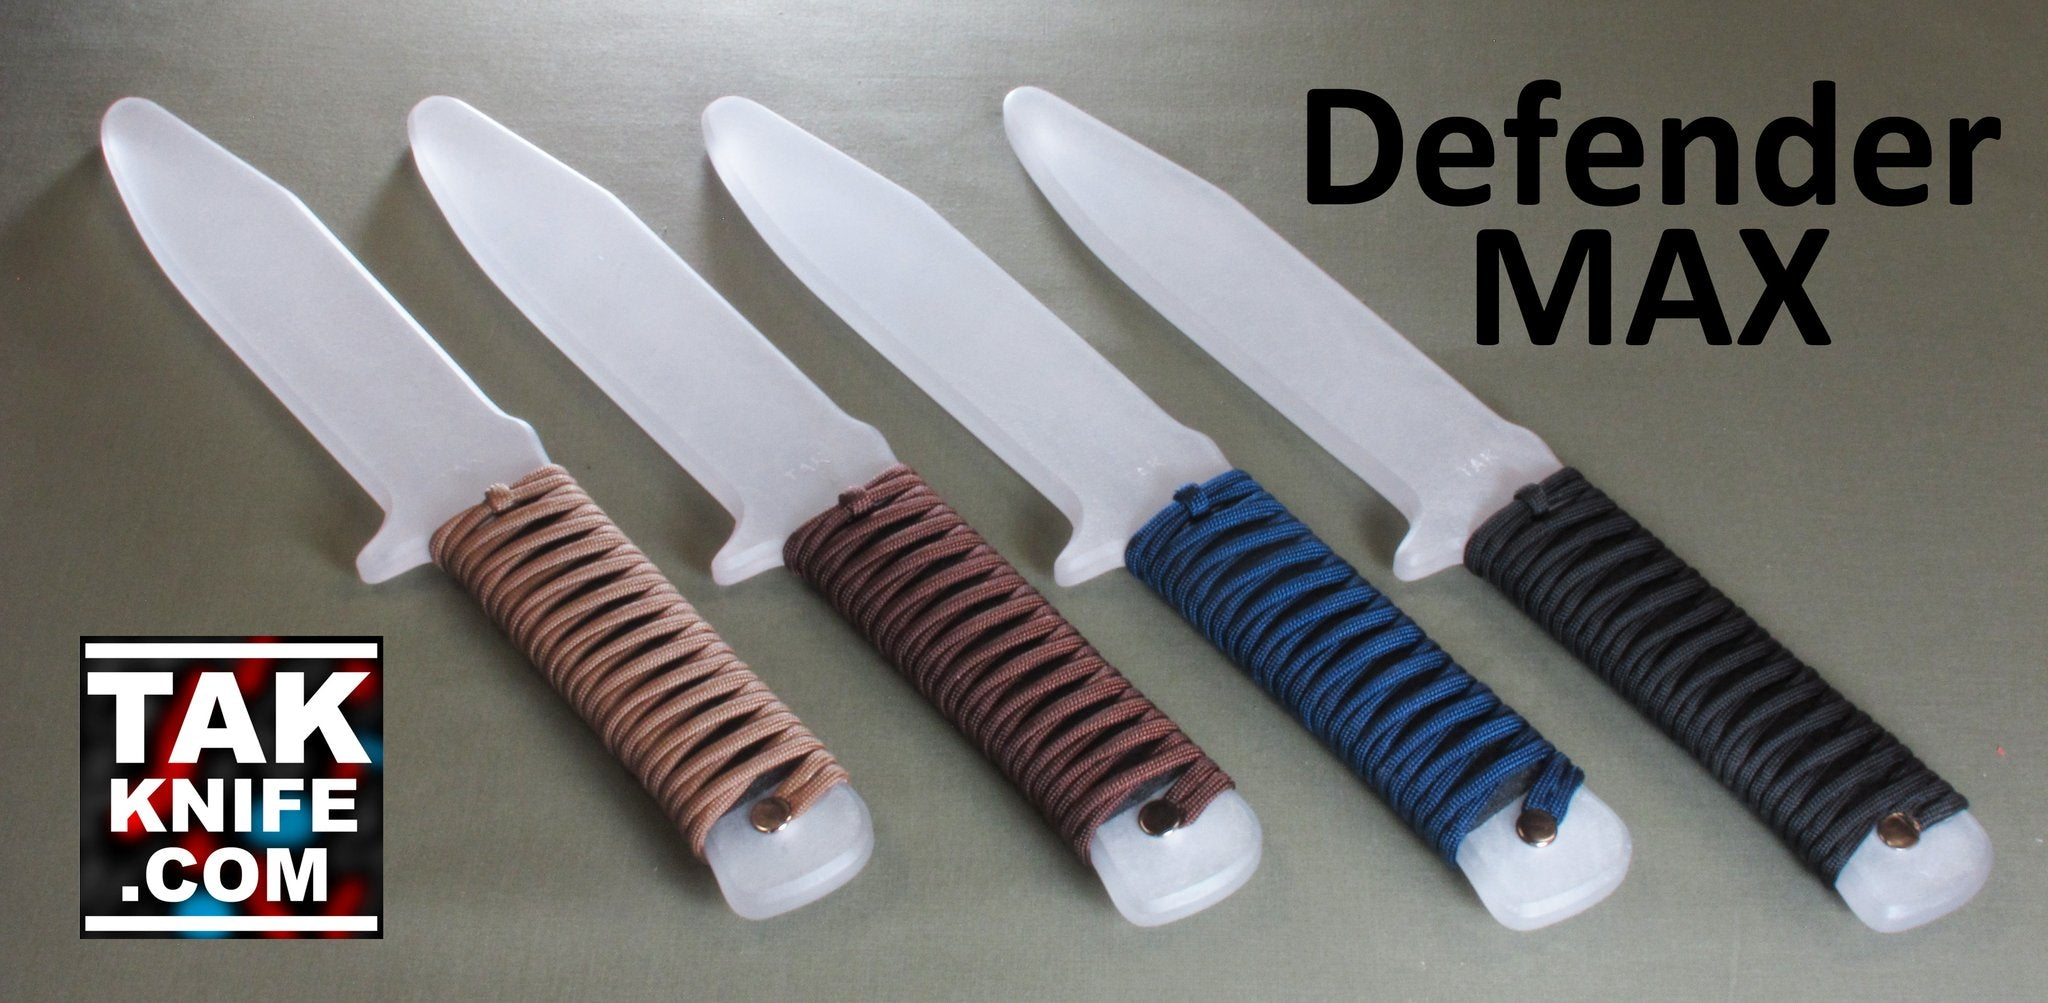 TAK Defender MAX Training Knife